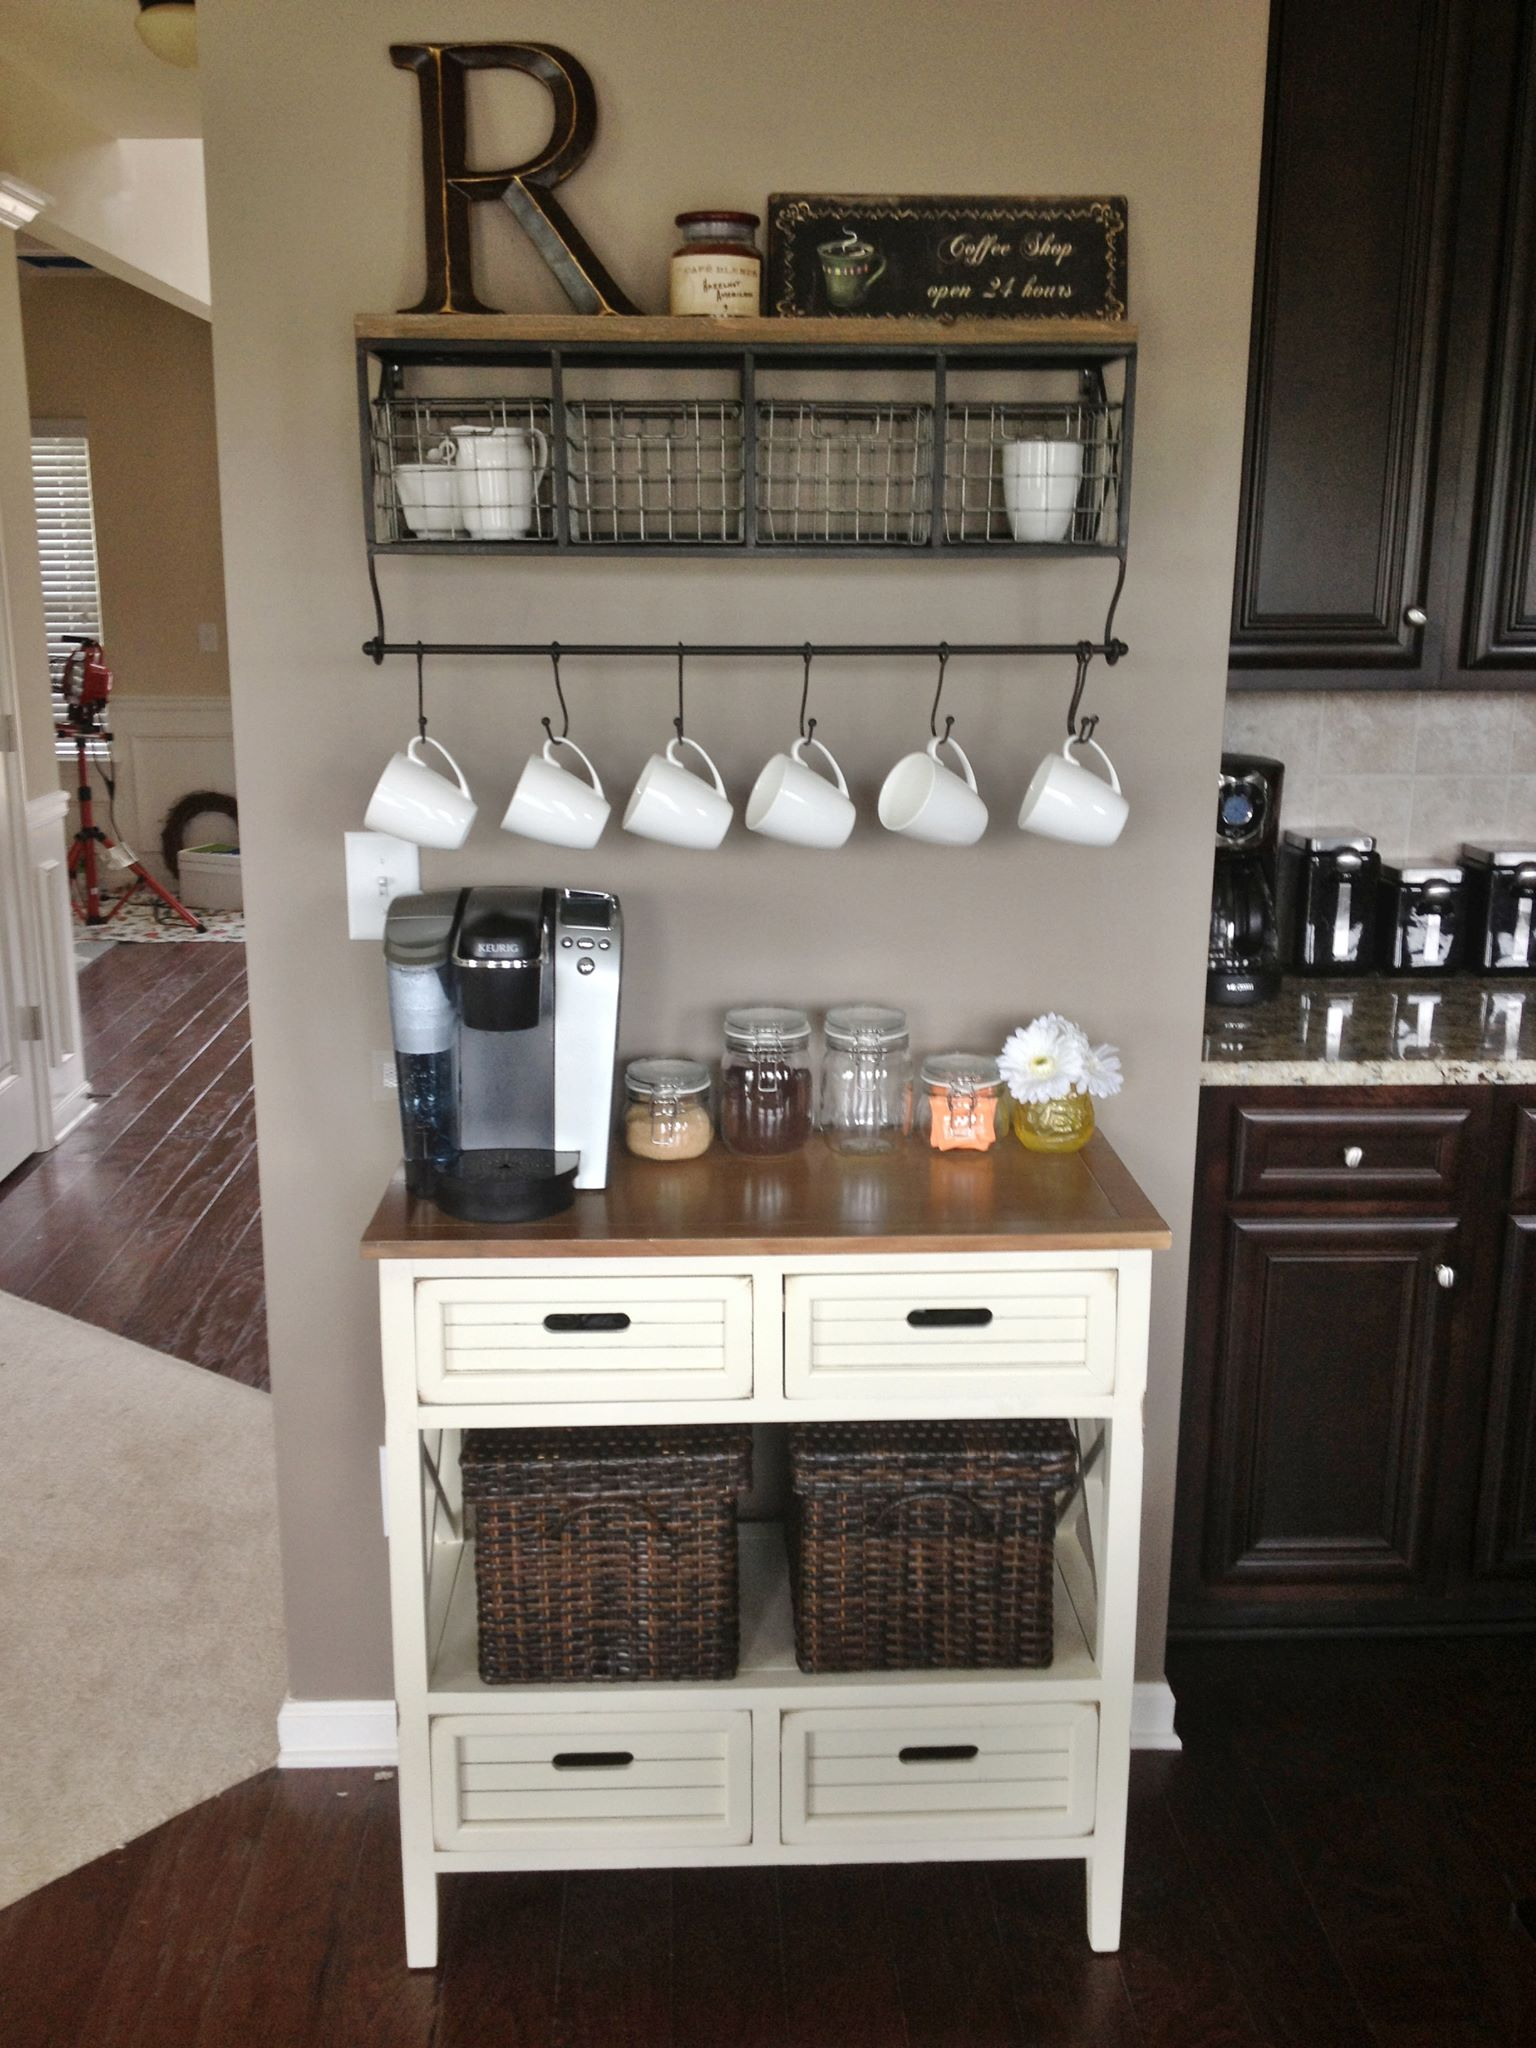 Coffee bar in a kitchen